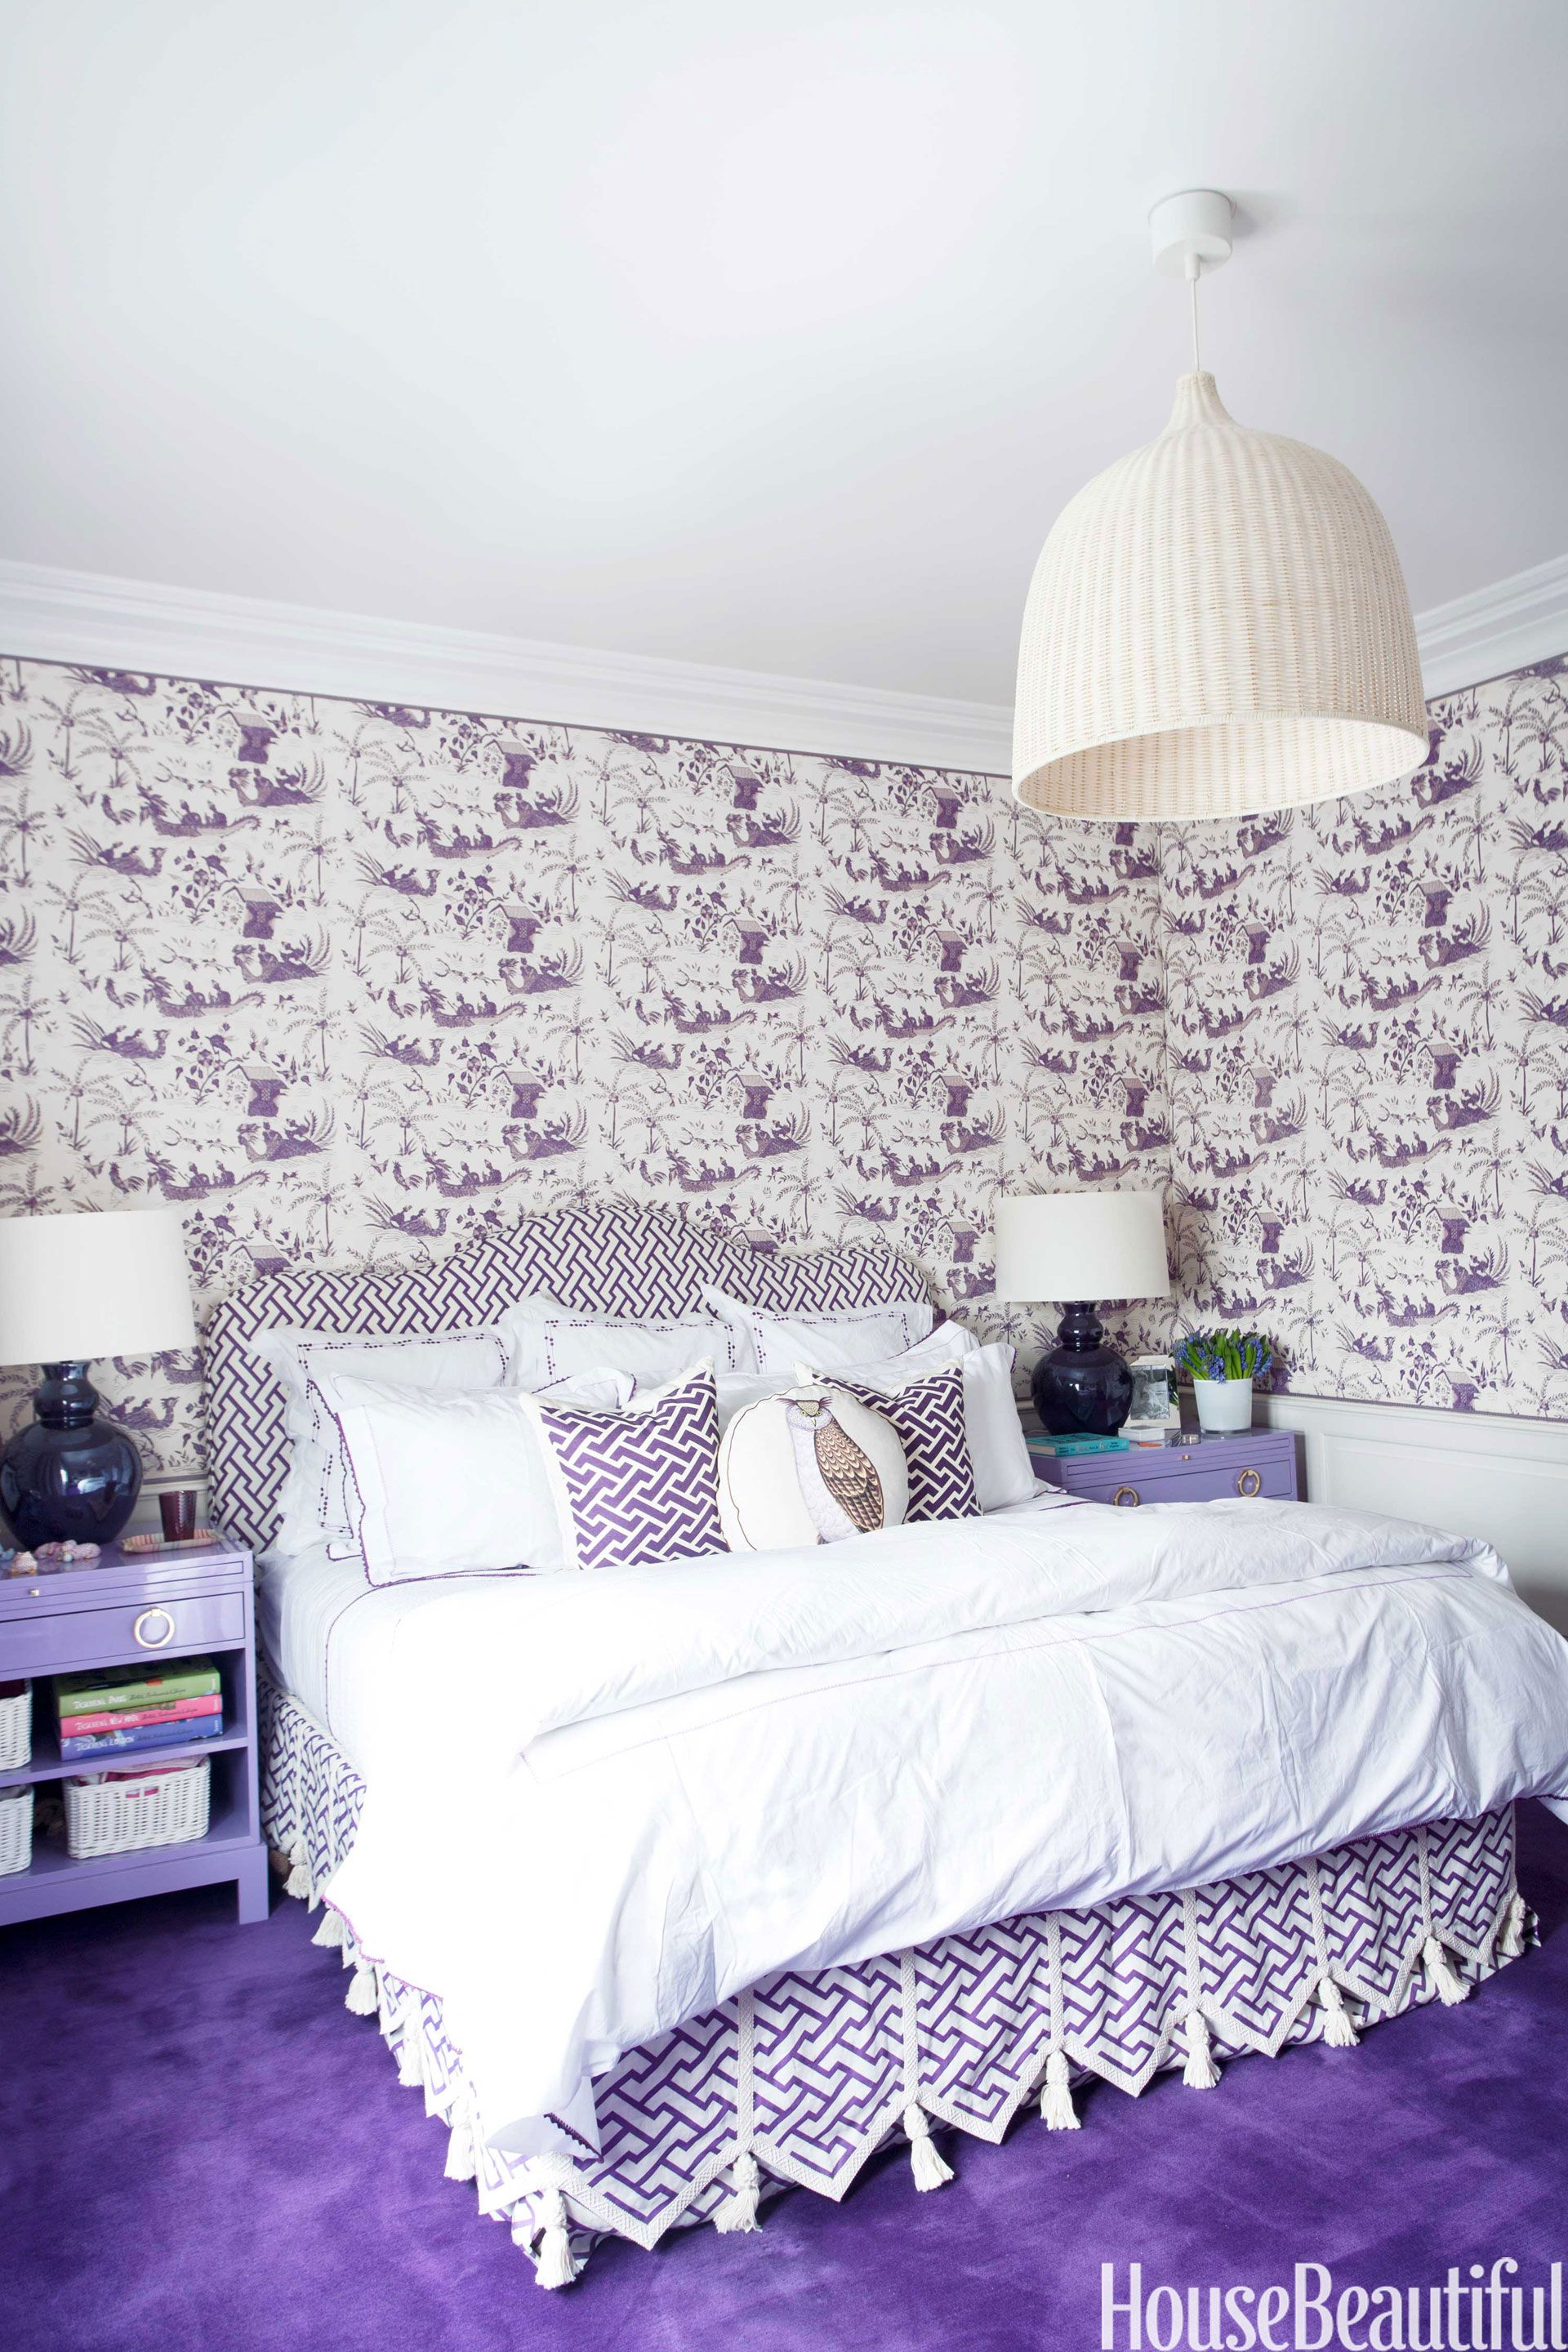 10 Purple Bedroom Ideas Lavender And Lilac Decor Ideasrhhousebeautiful: Purple Bedroom Decor At Home Improvement Advice